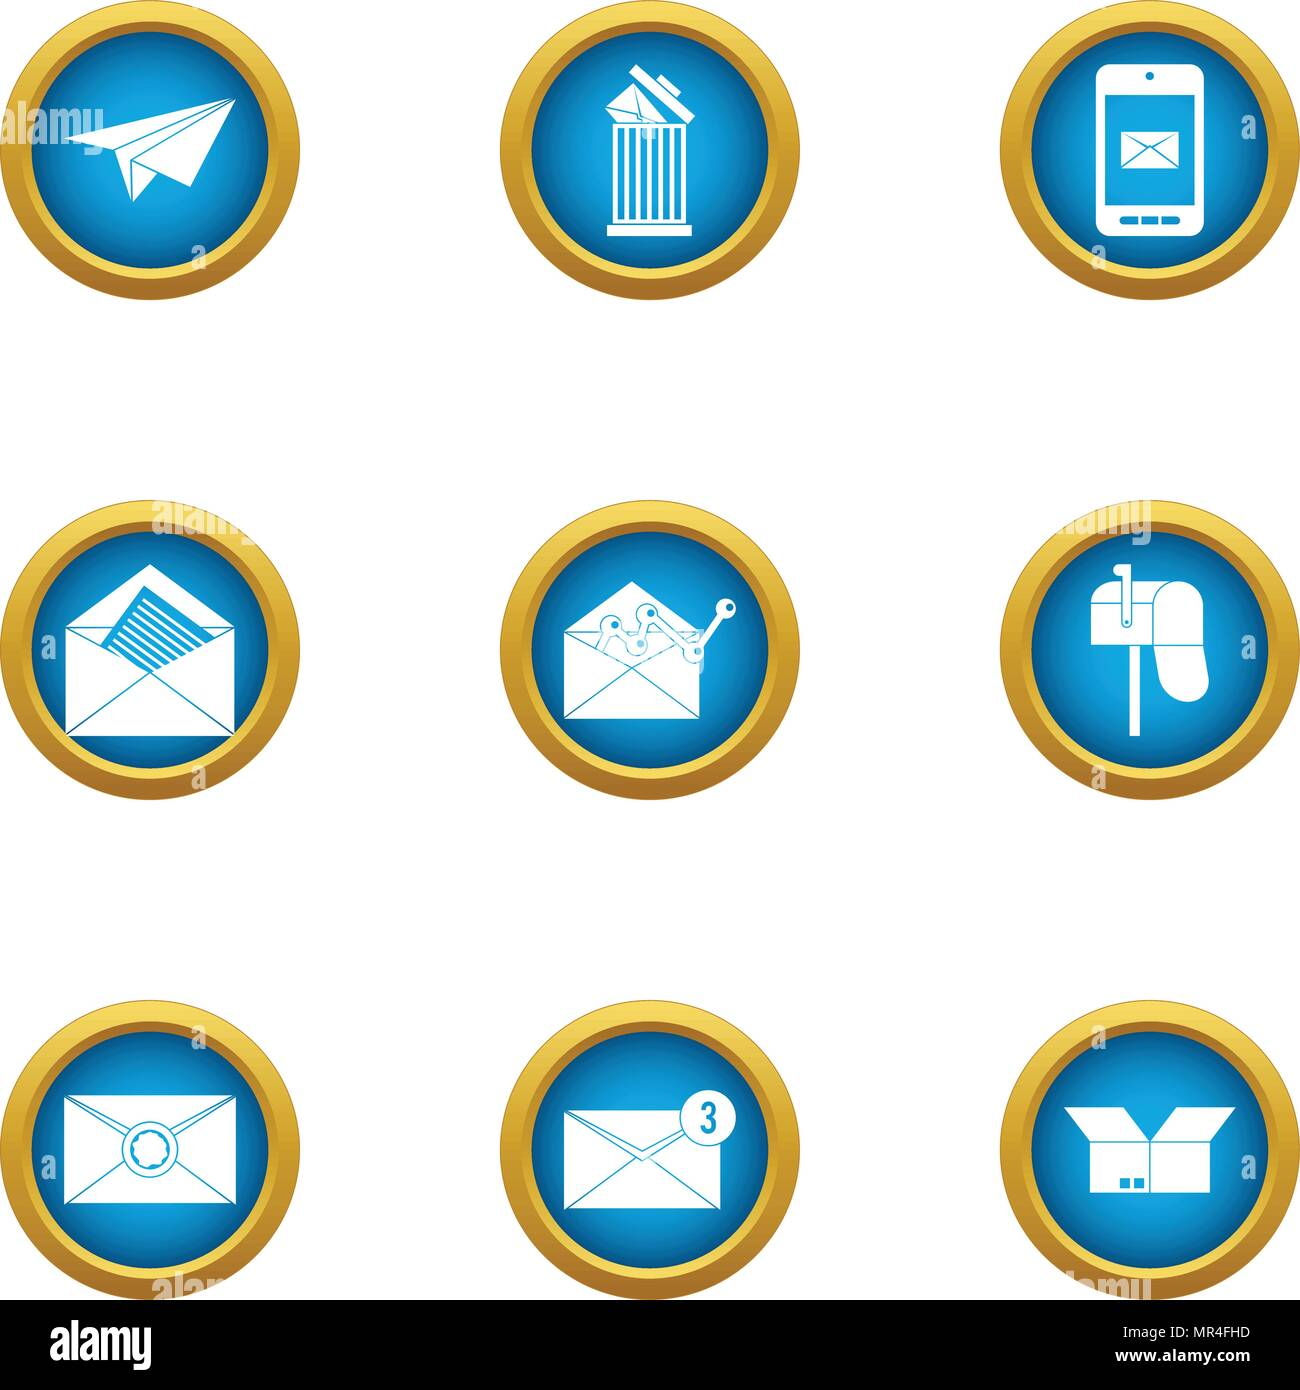 Postal parcel icons set, flat style - Stock Vector